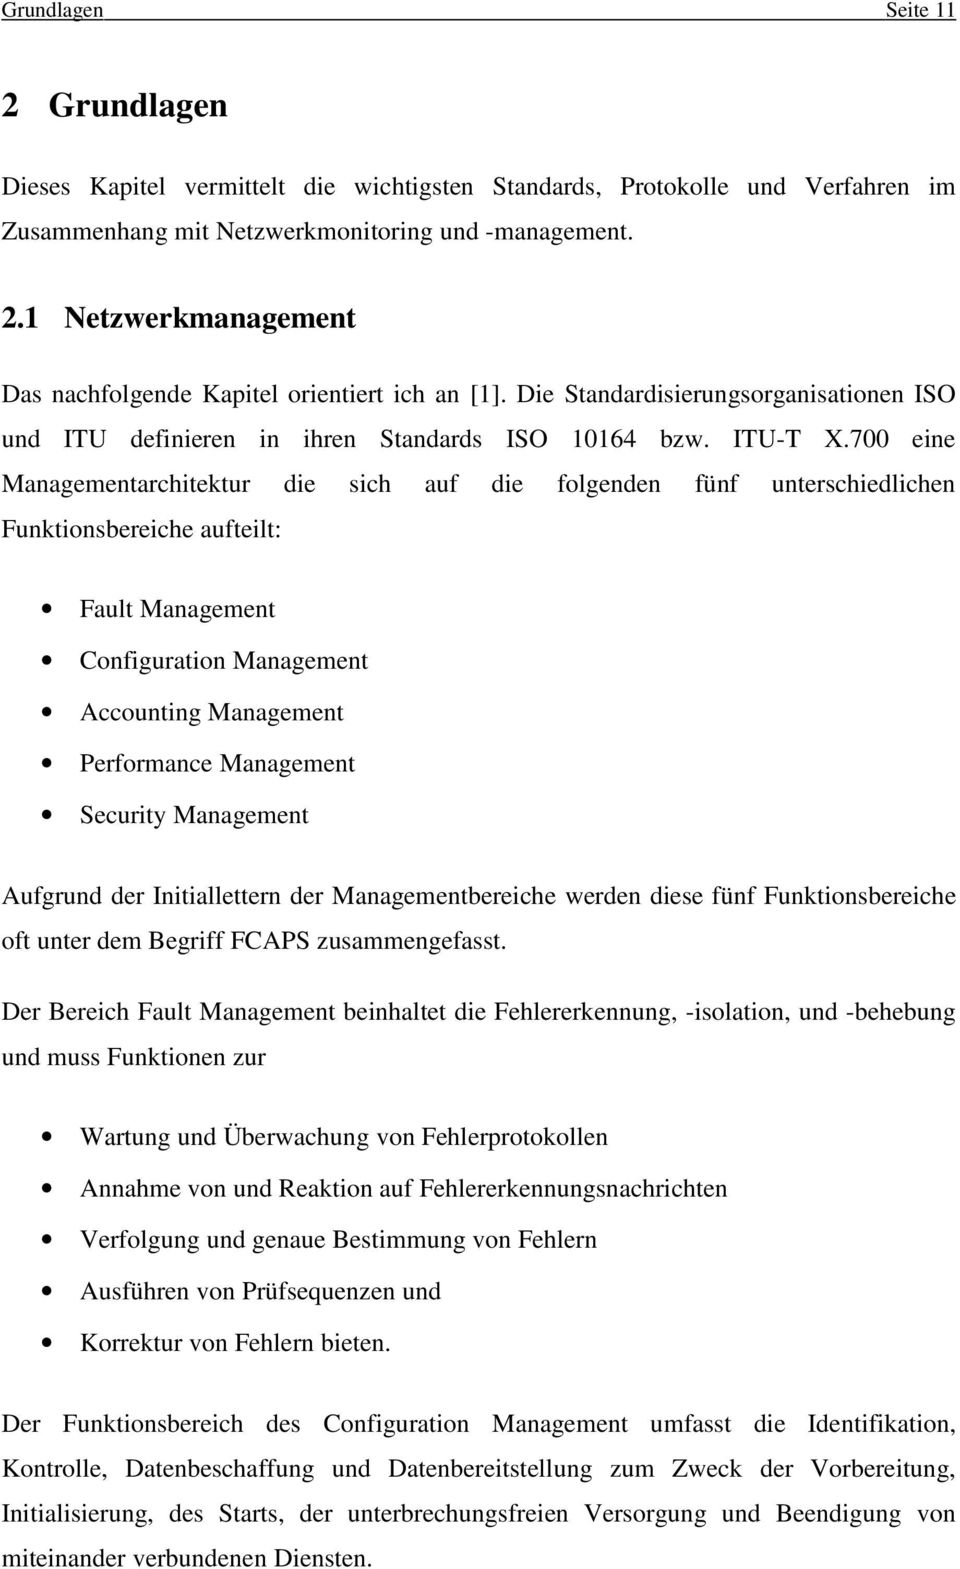 700 eine Managementarchitektur die sich auf die folgenden fünf unterschiedlichen Funktionsbereiche aufteilt: Fault Management Configuration Management Accounting Management Performance Management